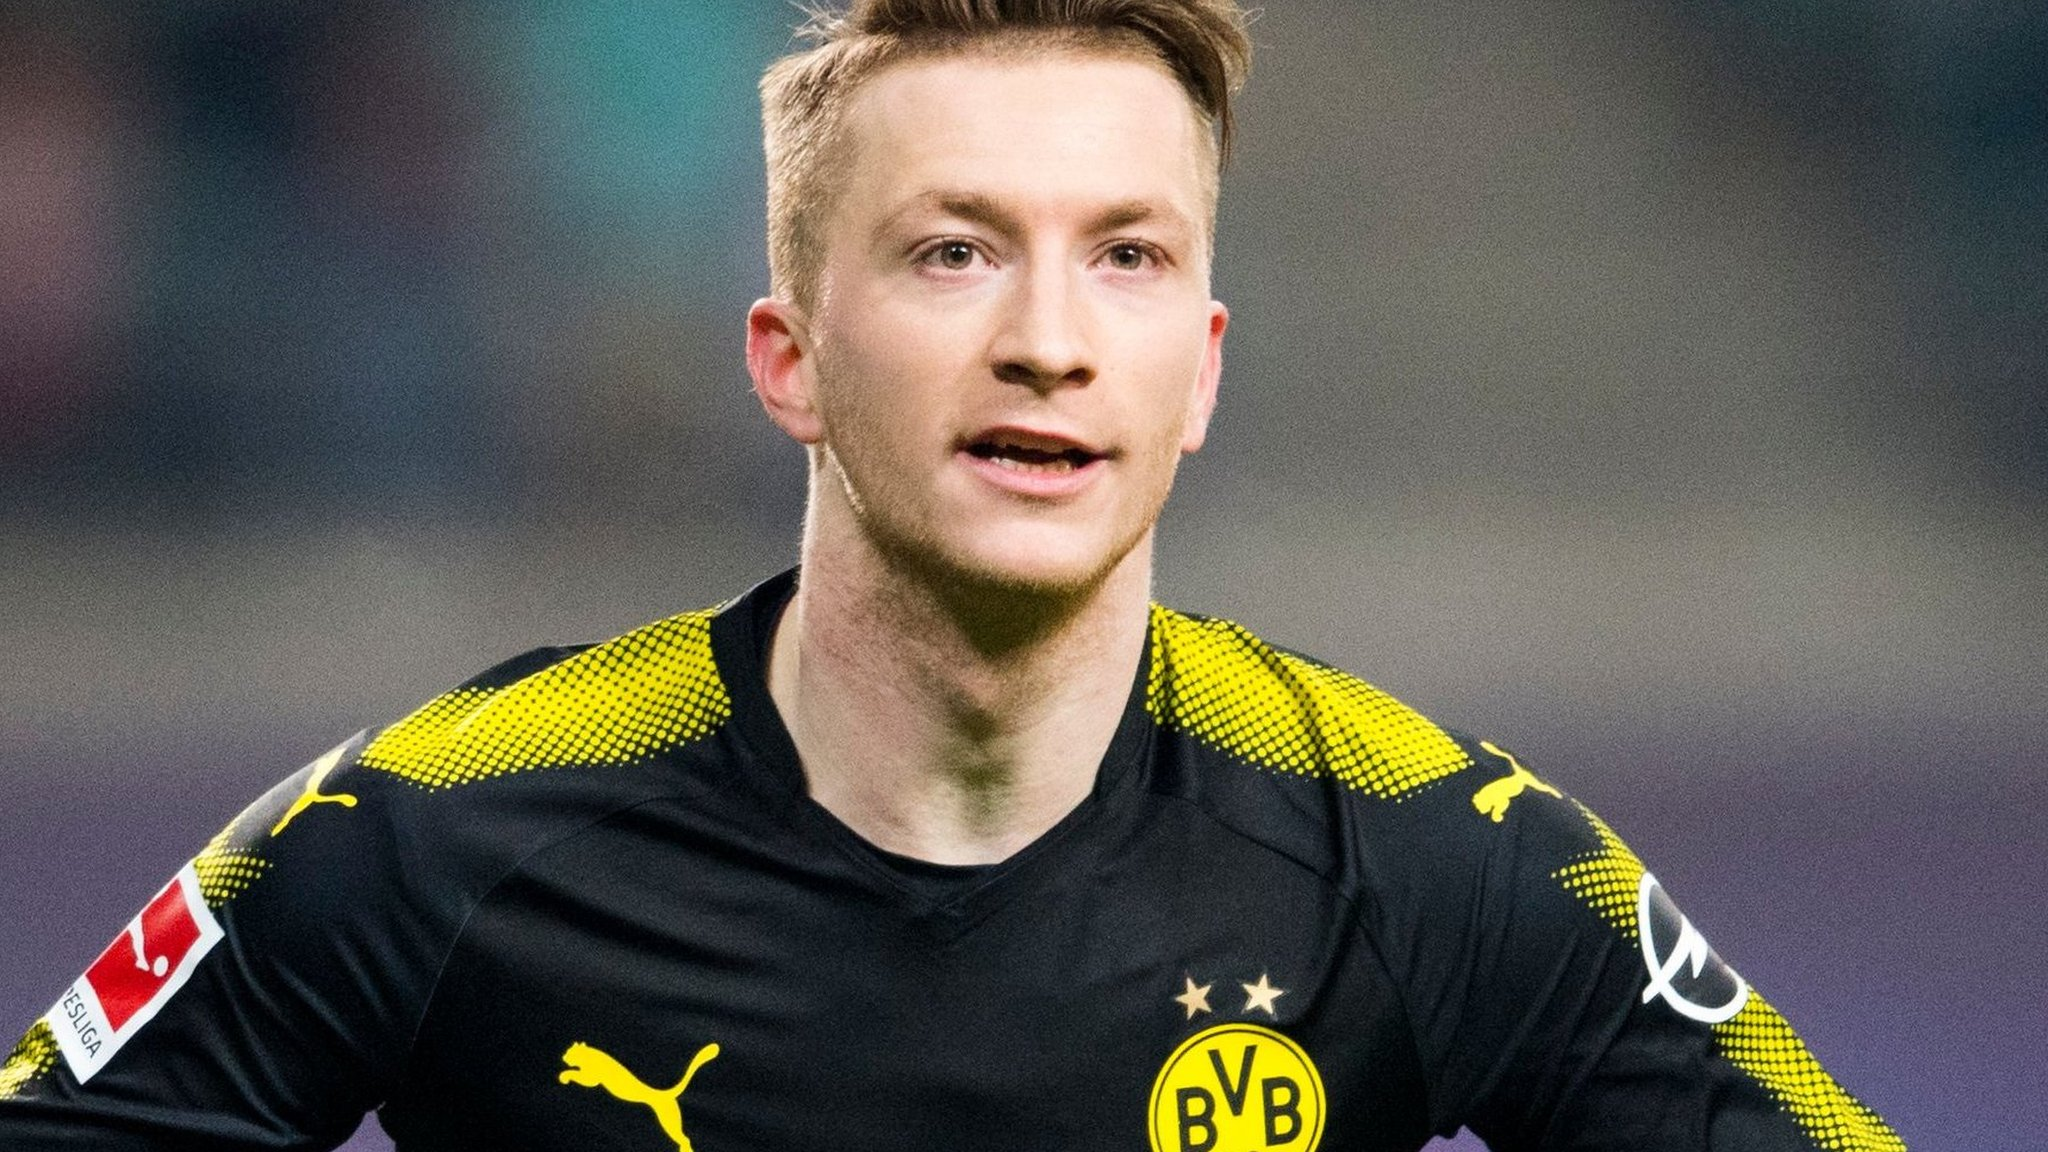 Winger Reus signs new Dortmund contract to 2023